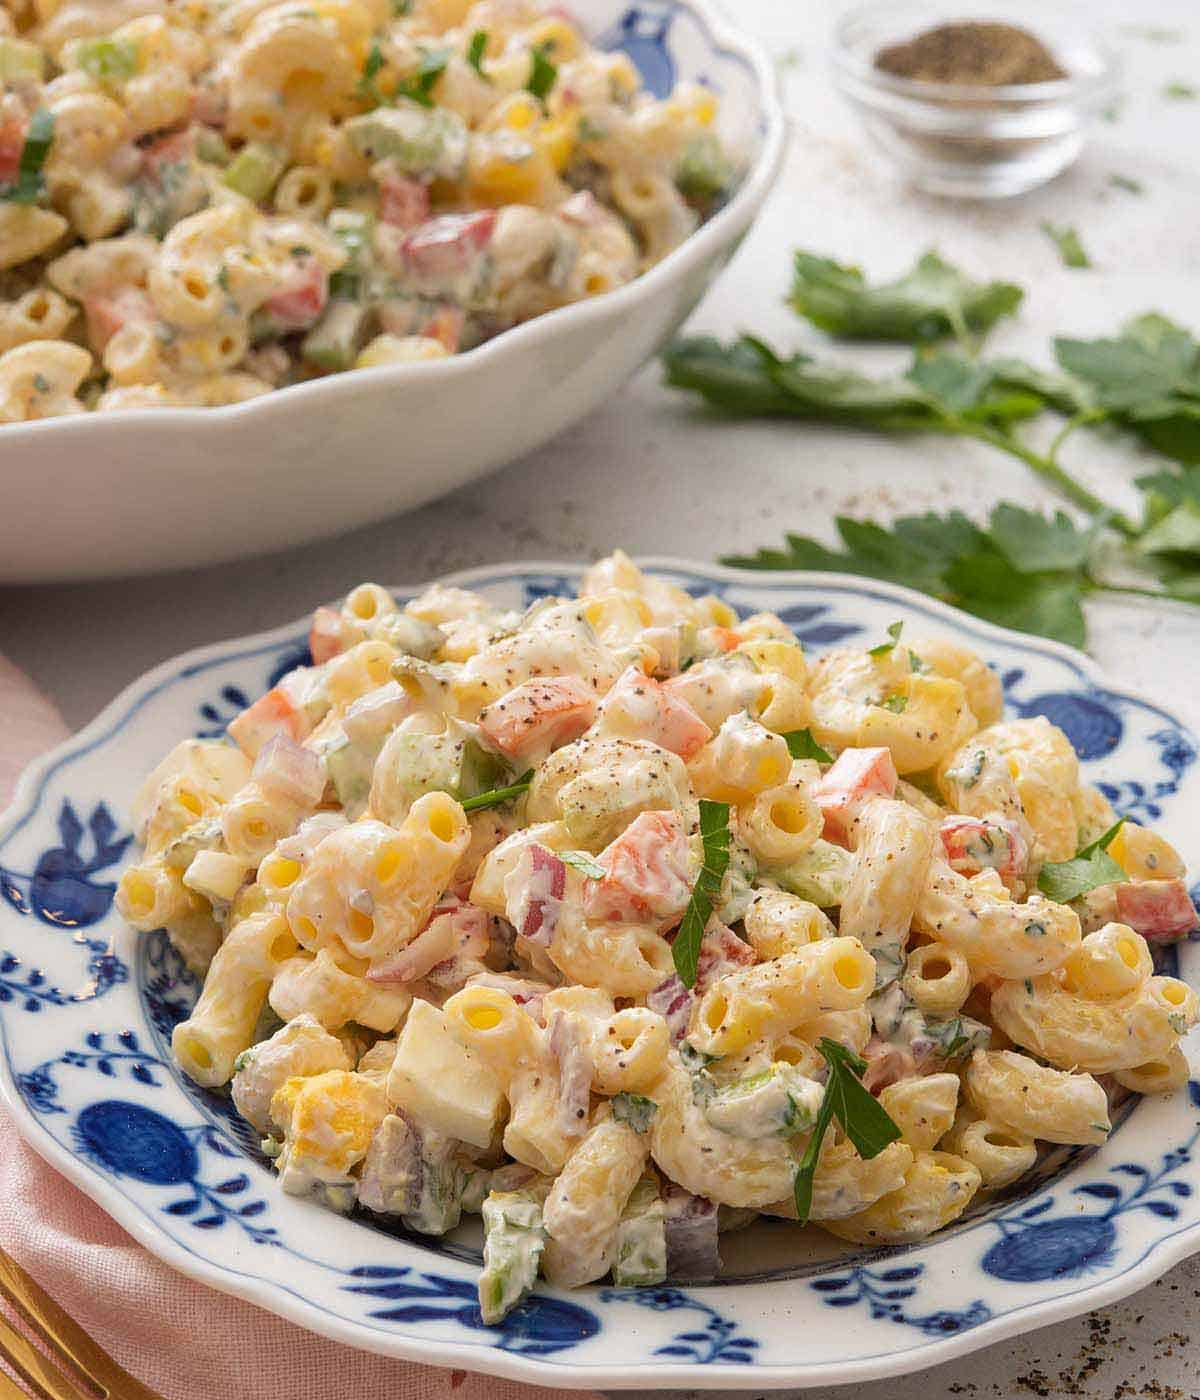 A blue and white plate of macaroni salad.